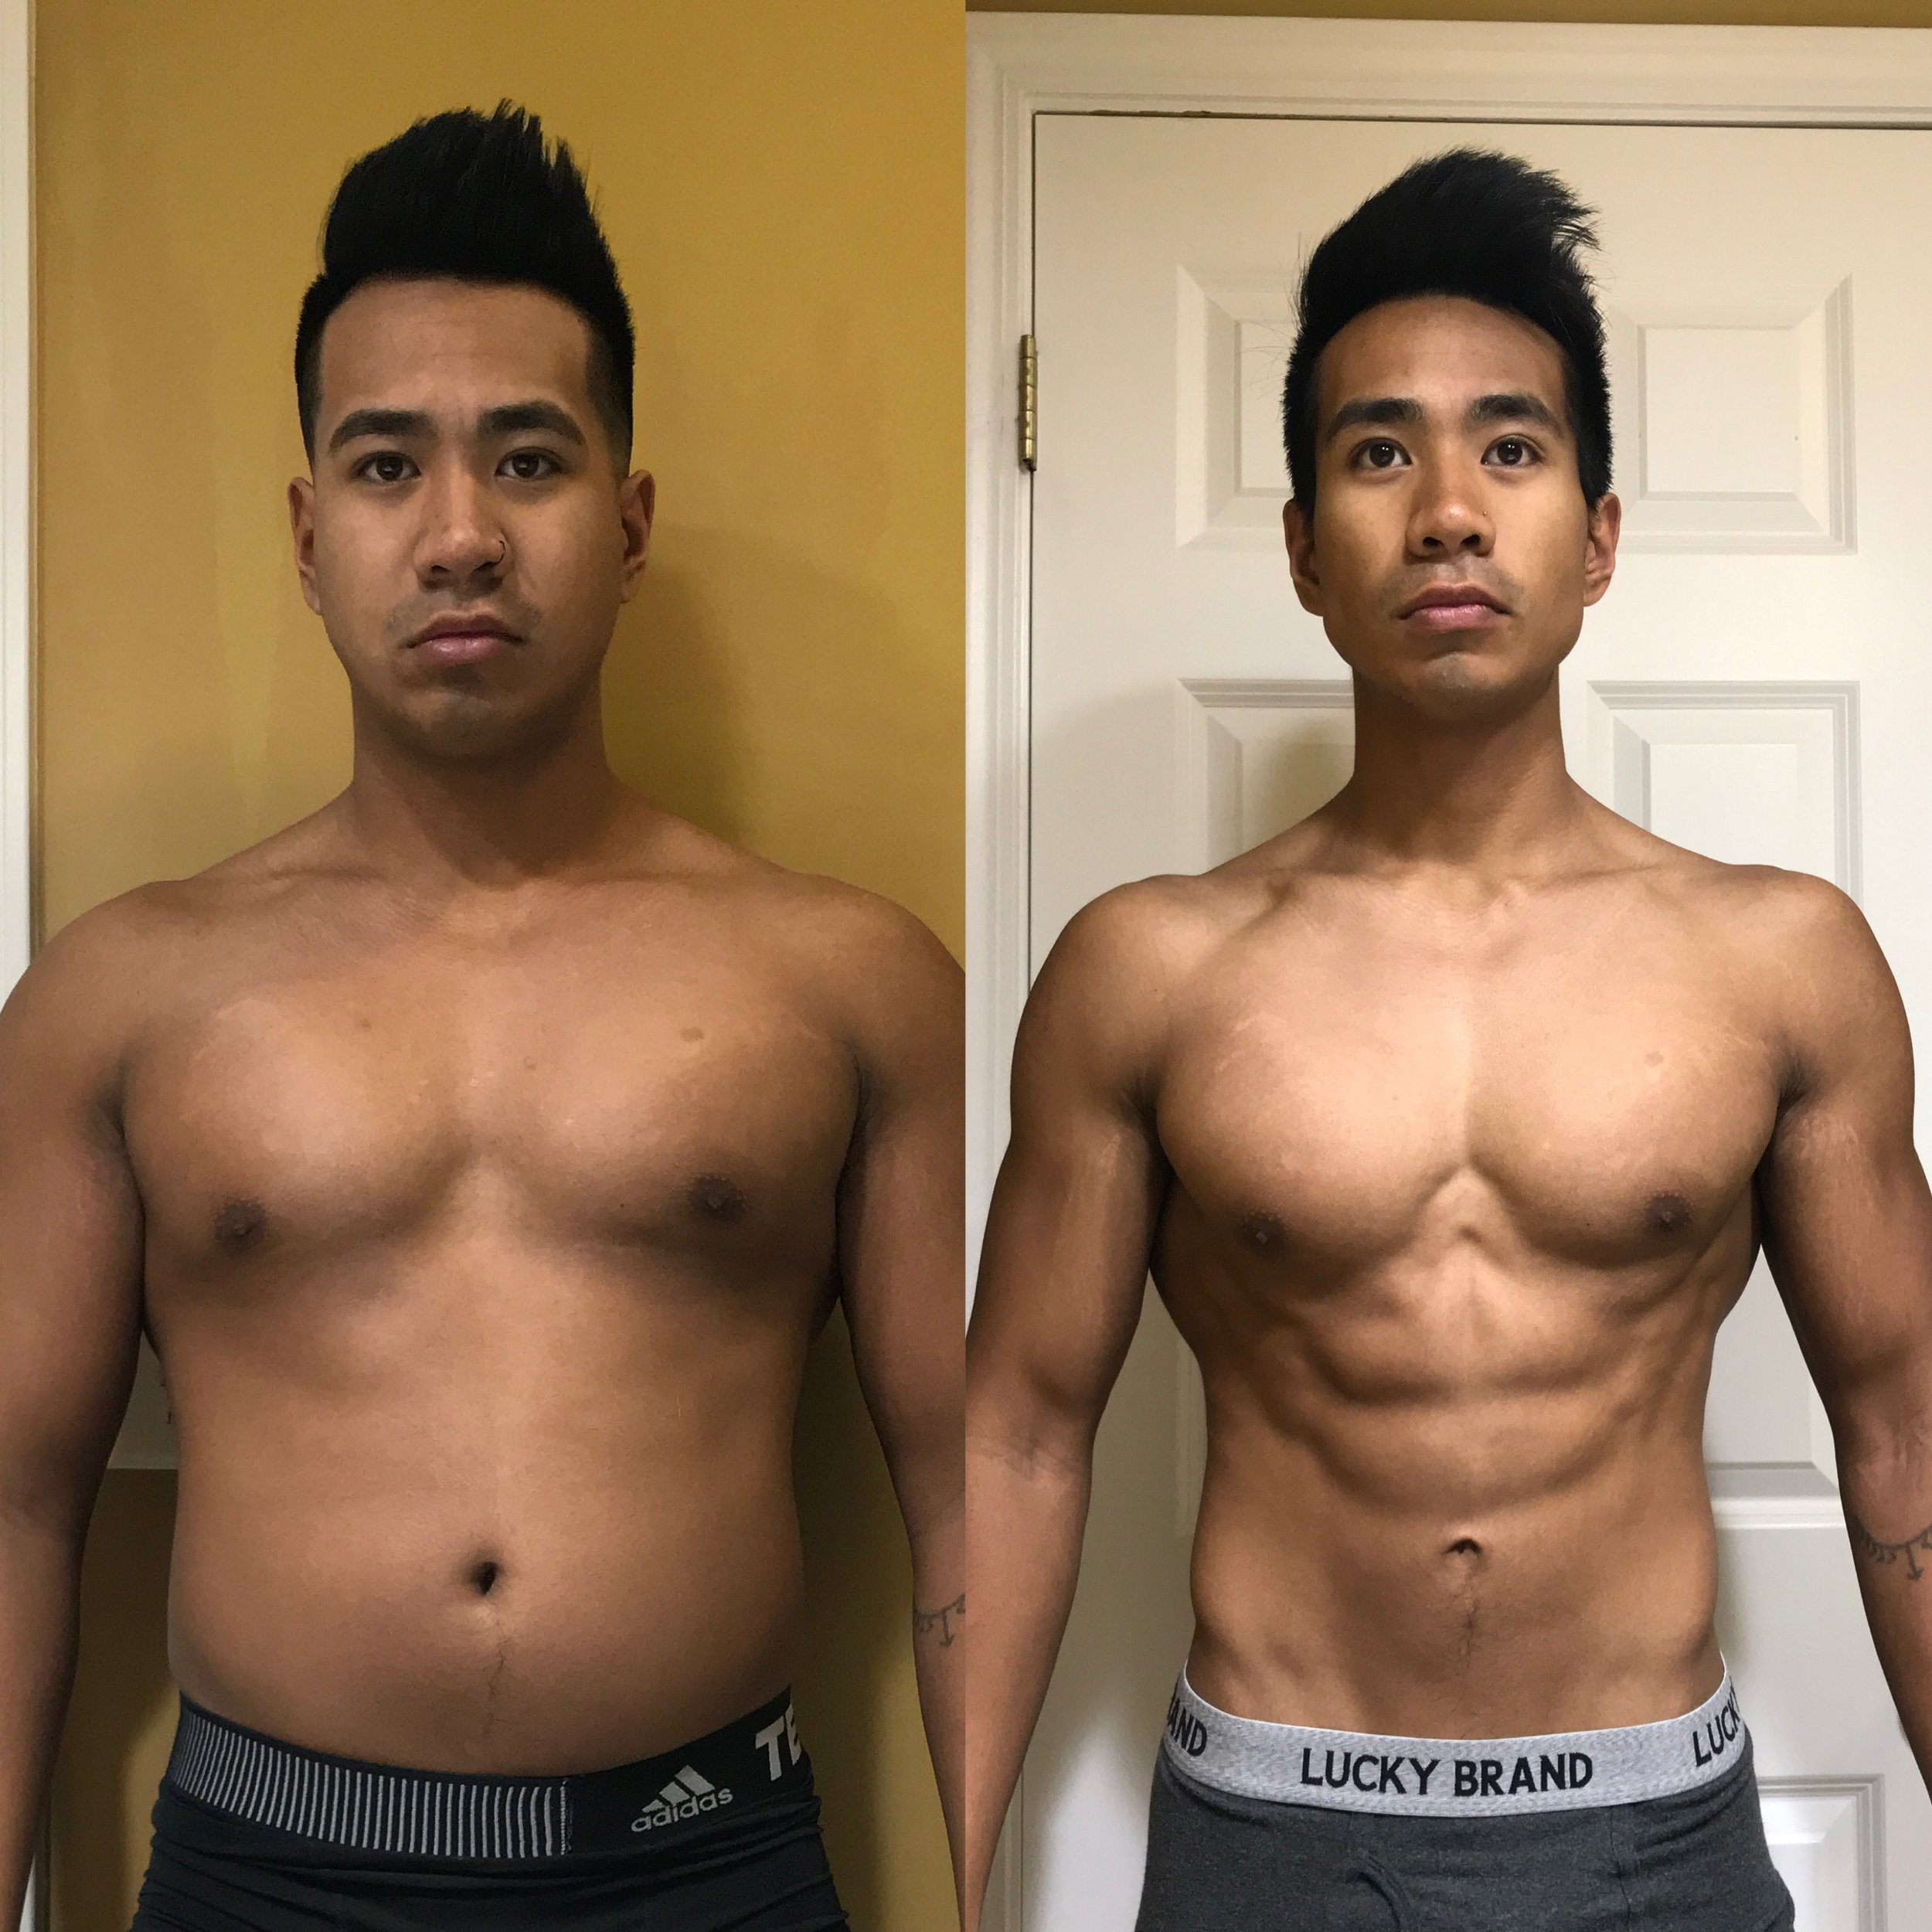 I began working with David after 4+ years of training on my own. I had made some successful gains through trial and error, but at the end of my last bulk, in which I weighed the heaviest i've ever weighed, I felt like I needed someone to help me loose fat, and maintain muscle. I was looking for someone who not only was interested in helping others, but comes from a scientific approach, and does only what is necessary. No BS, just science and patience. David provides exactly that.   A few weeks into coaching with David, and I felt on top of the world. So much, I decided to prep for my first Men's Physique competition. David did a phenomenal job preparing me for this moment. He adjusted only when needed, provided all the information I needed to know, and stayed on top of my physique heading into the show. Working with David has really changed the game for me. I never thought i'd have the physique i've achieved with David's help. Oh, and not to mention, he takes a diet approach in which allowed me to eat pizza, ice cream, and cookies while prepping for my show. How's that sound? ;)  I will definitely turn to David for my next prep. He is someone you can trust, someone who CONTINUES to do his research, and will never stop learning about health & fitness. This is something you should look for in a coach. Incredibly blessed to have worked with David!